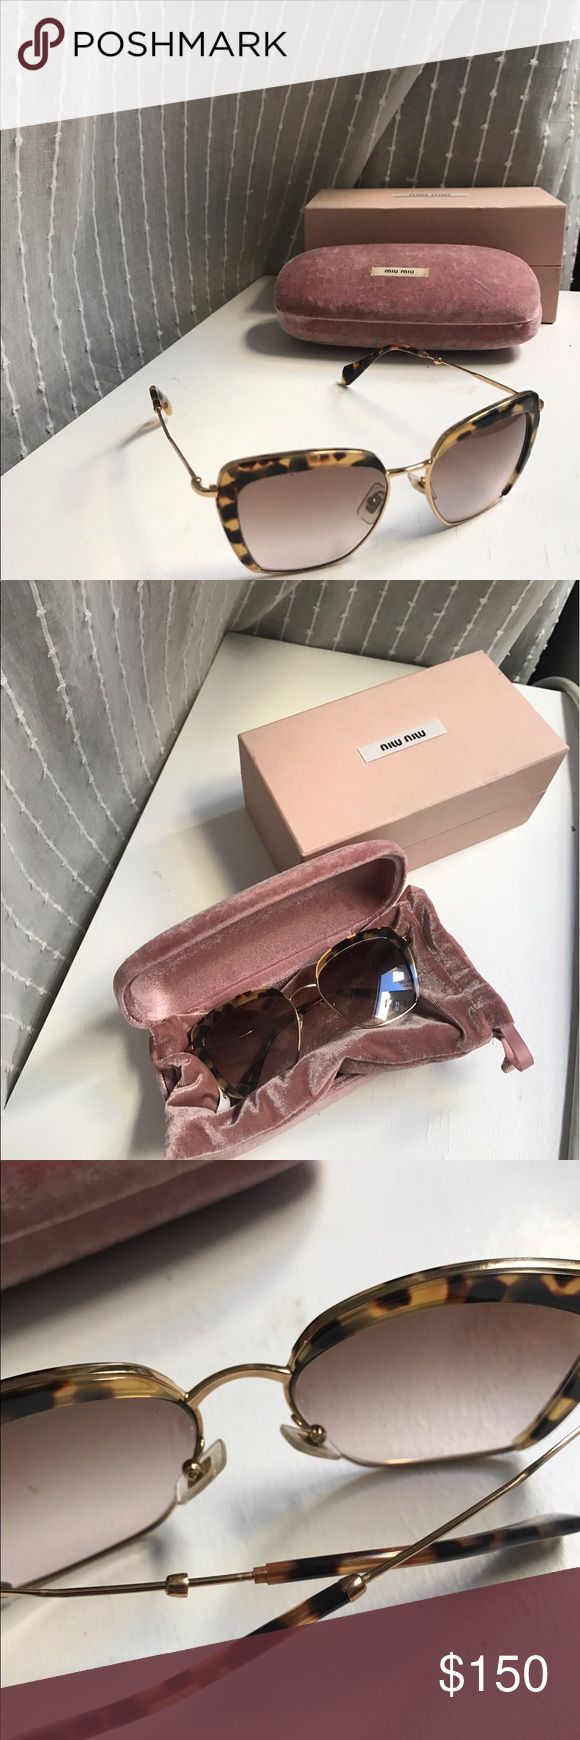 MiuMiu sunglasses MiuMiu sunglasses with original velvet slip, case and box. Slightly worn with a few light marks on the lens and a piece of metal detached on the back that is easily fixable. They just don't suit my face shape. Miu Miu Accessories Glasses